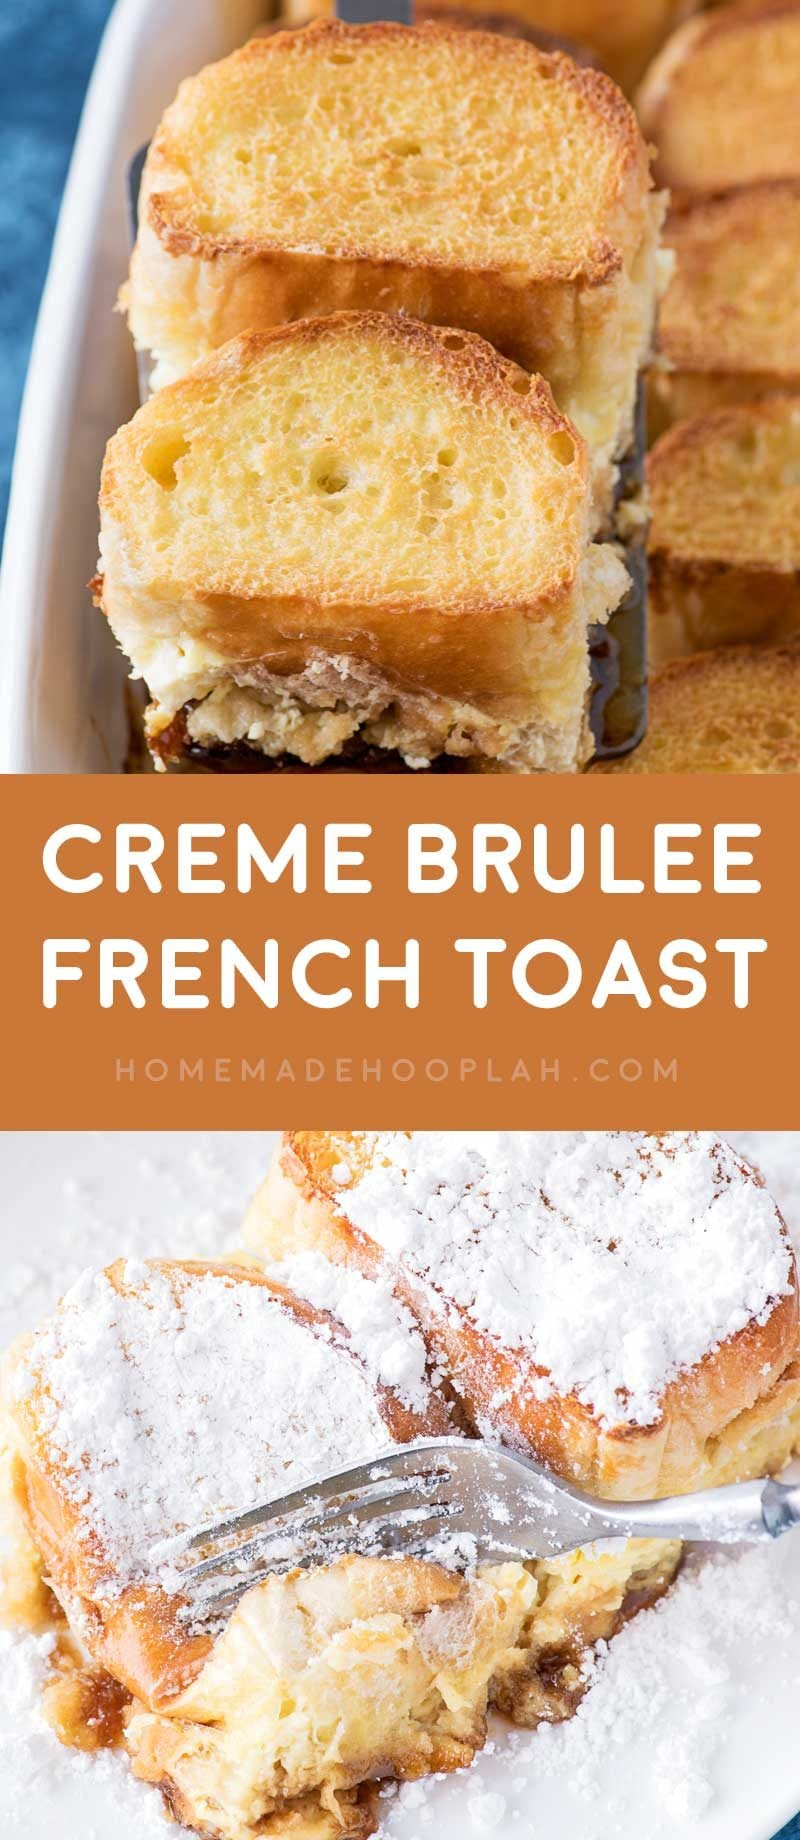 Creme Brulee French Toast! My most requested recipe! Overnight French toast flavored with a touch of orange liqueur that's baked casserole style on a bed of homemade caramel sauce. | HomemadeHooplah.com